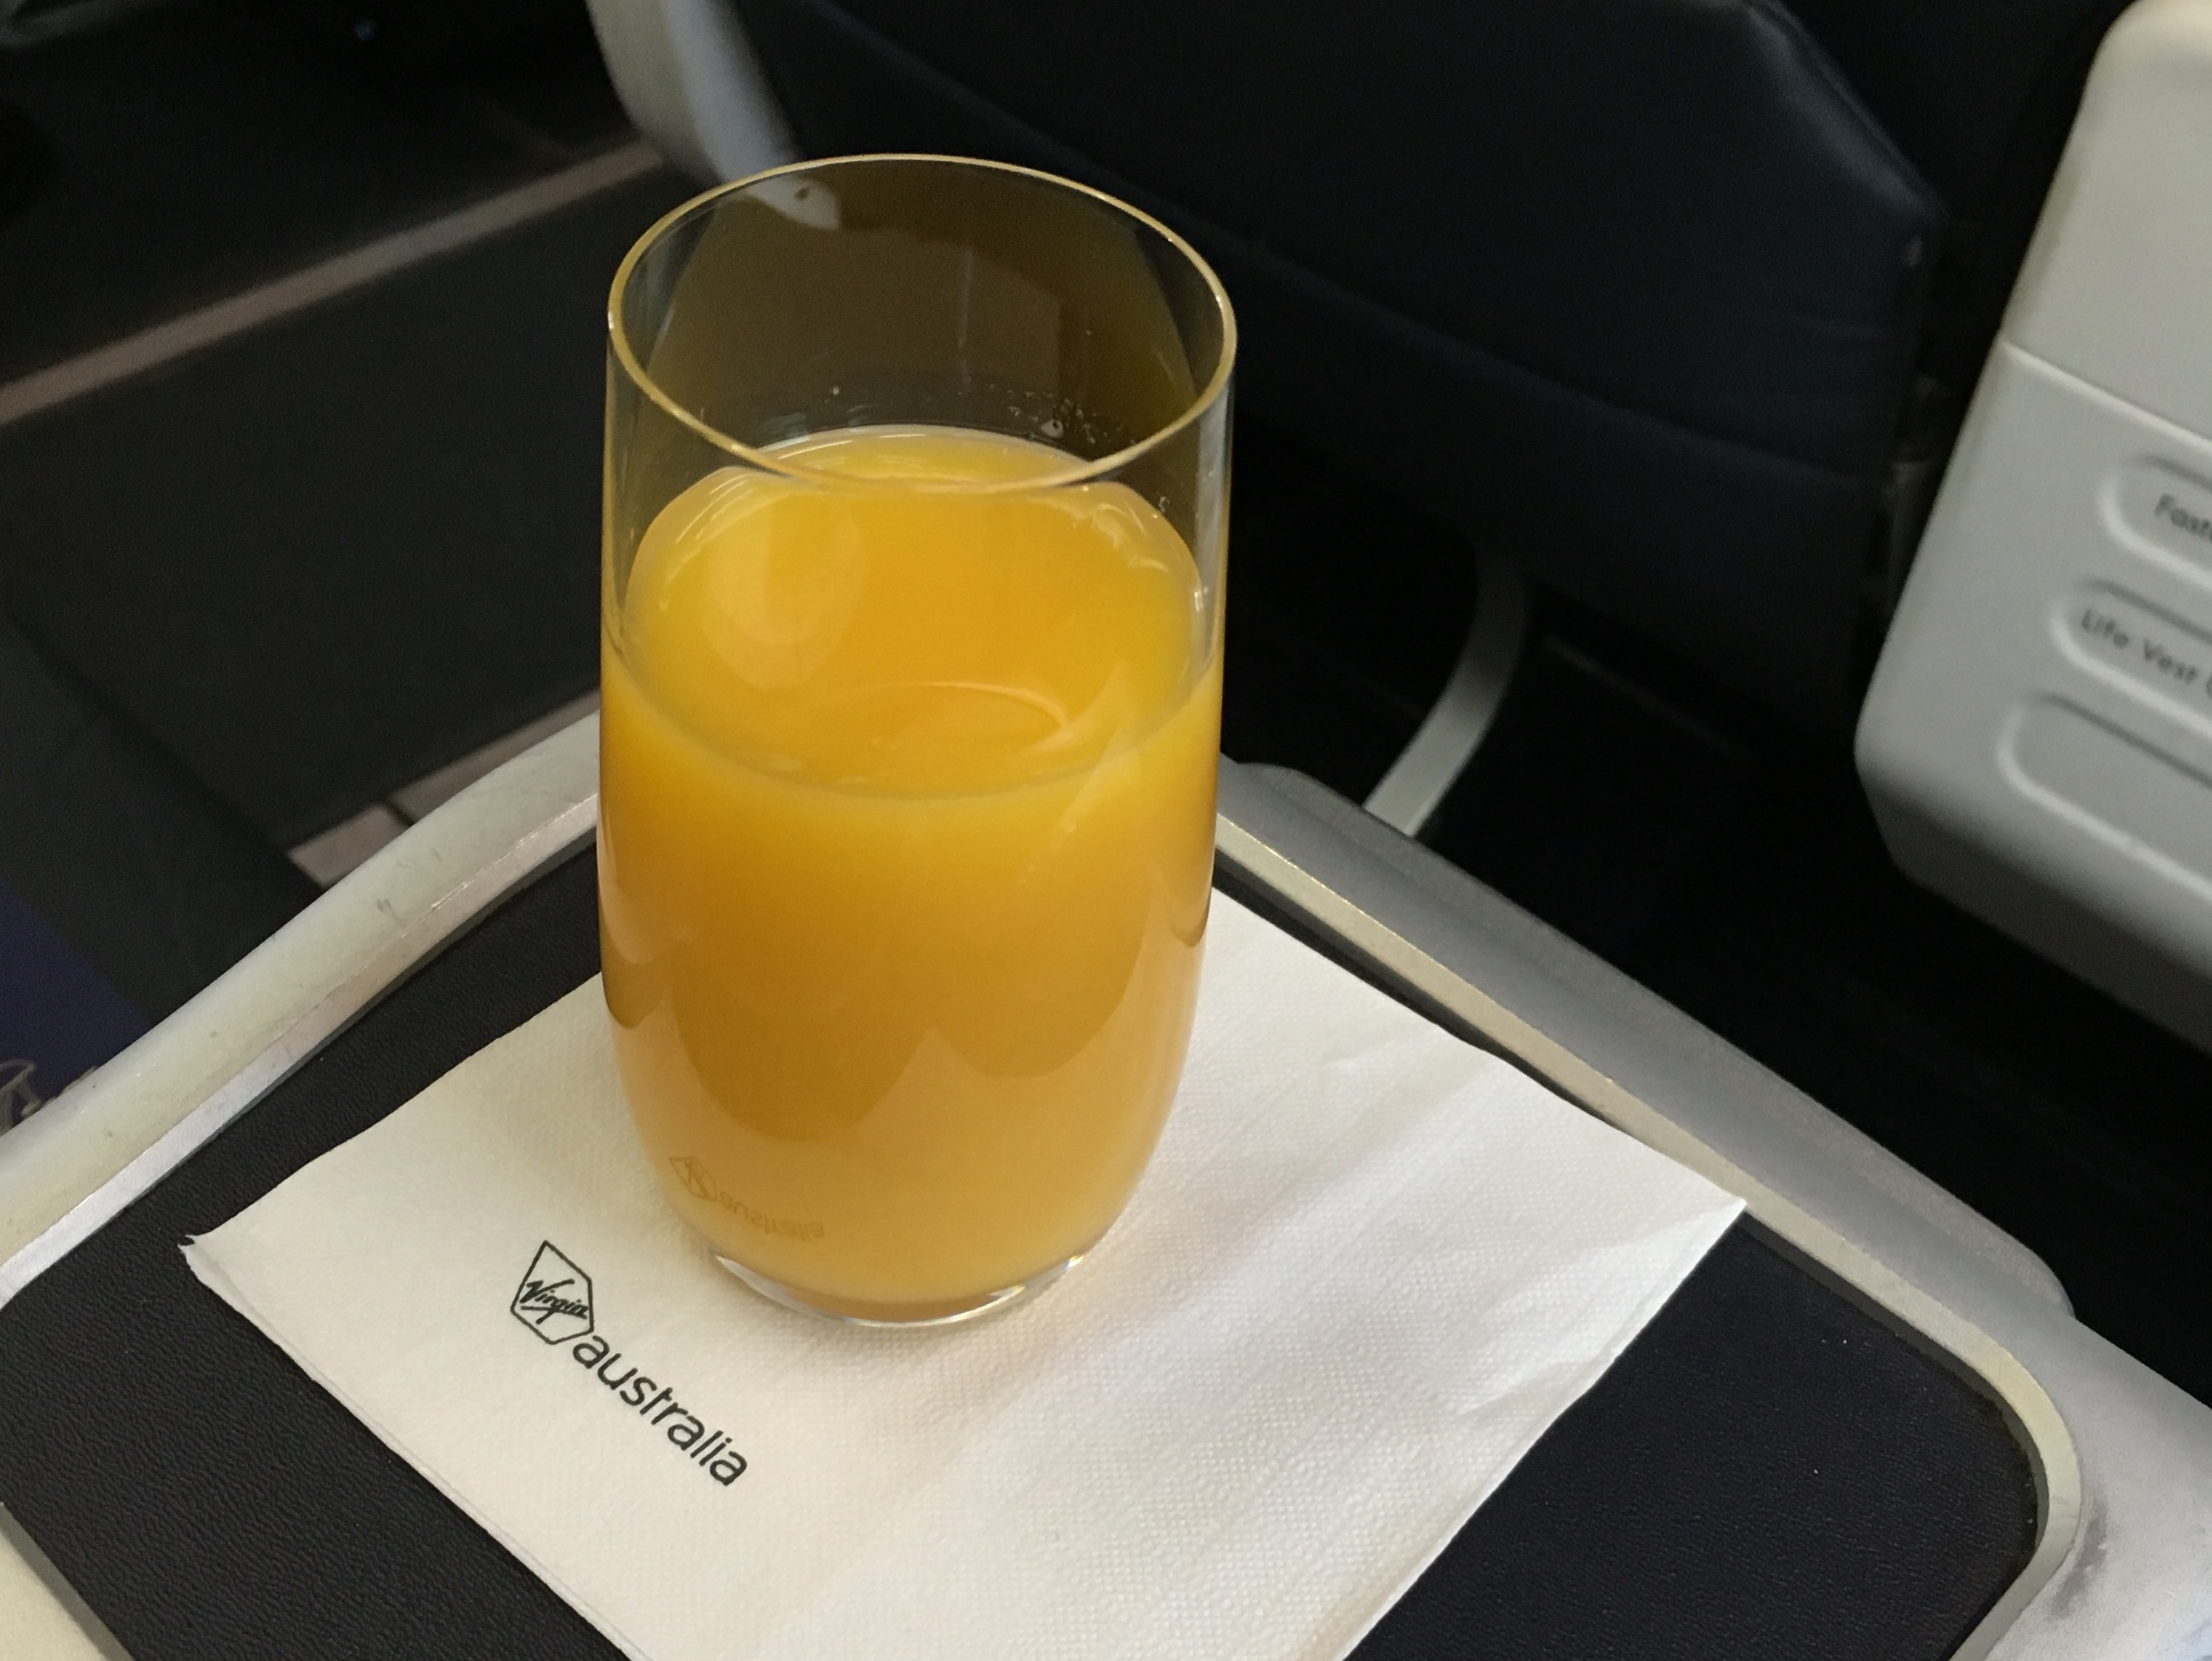 Virgin Australia pure orange juice